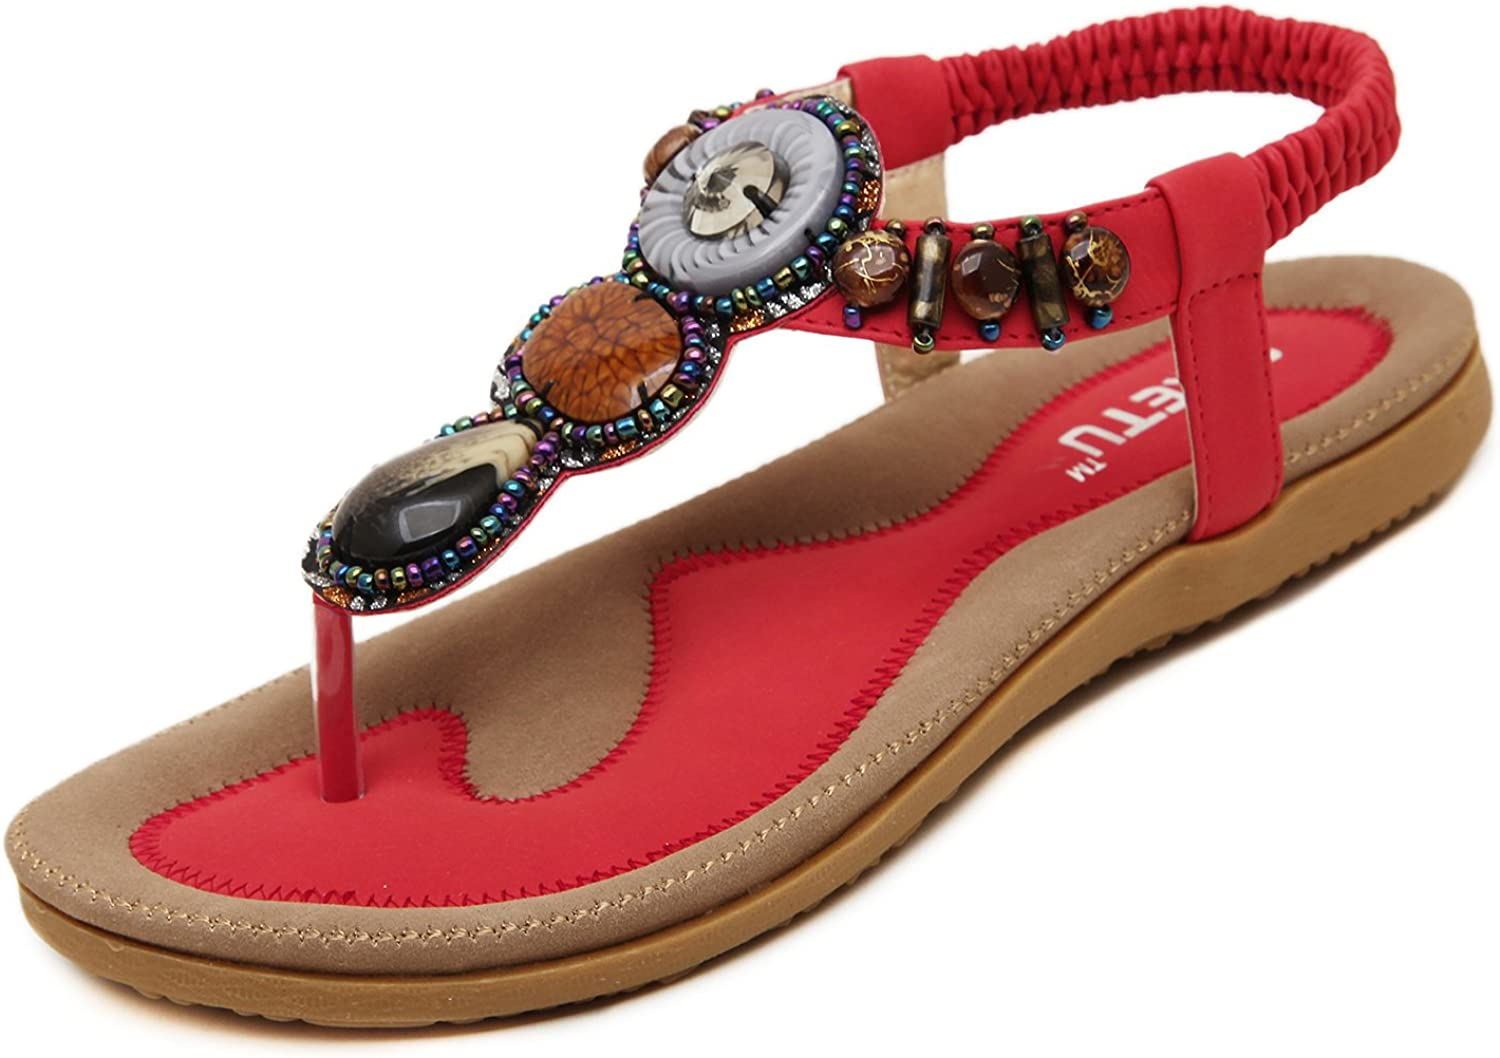 DQQ Womens Red T Strap Thong Sandal 9.5 US